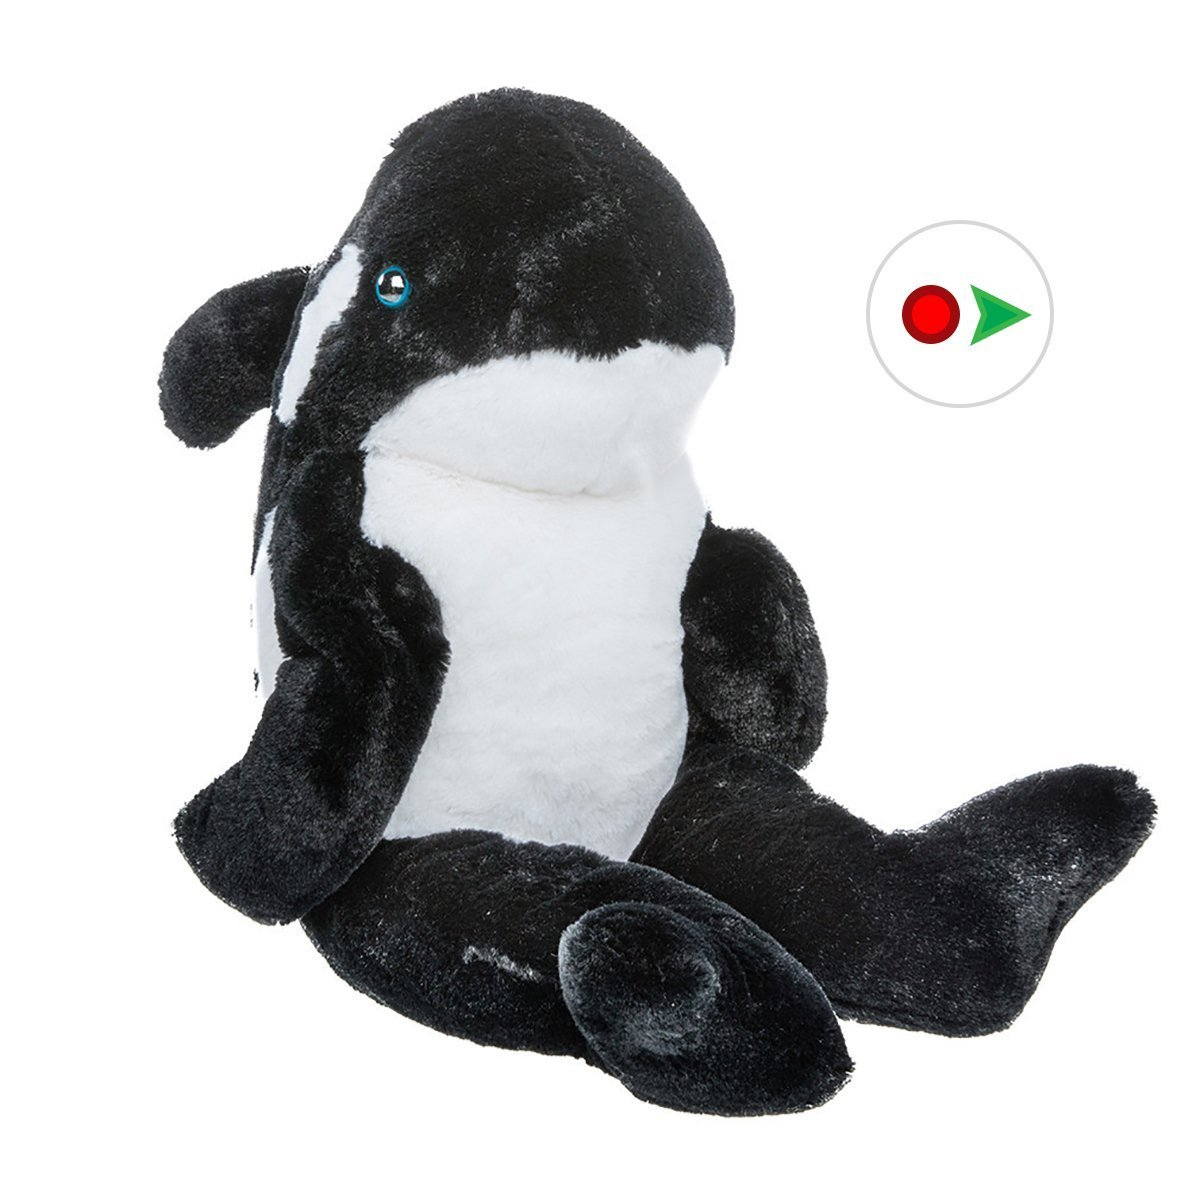 Record Your Own Plush 16 inch Black Orca Whale Ready To Love In A Few Easy Steps by Bear Factory